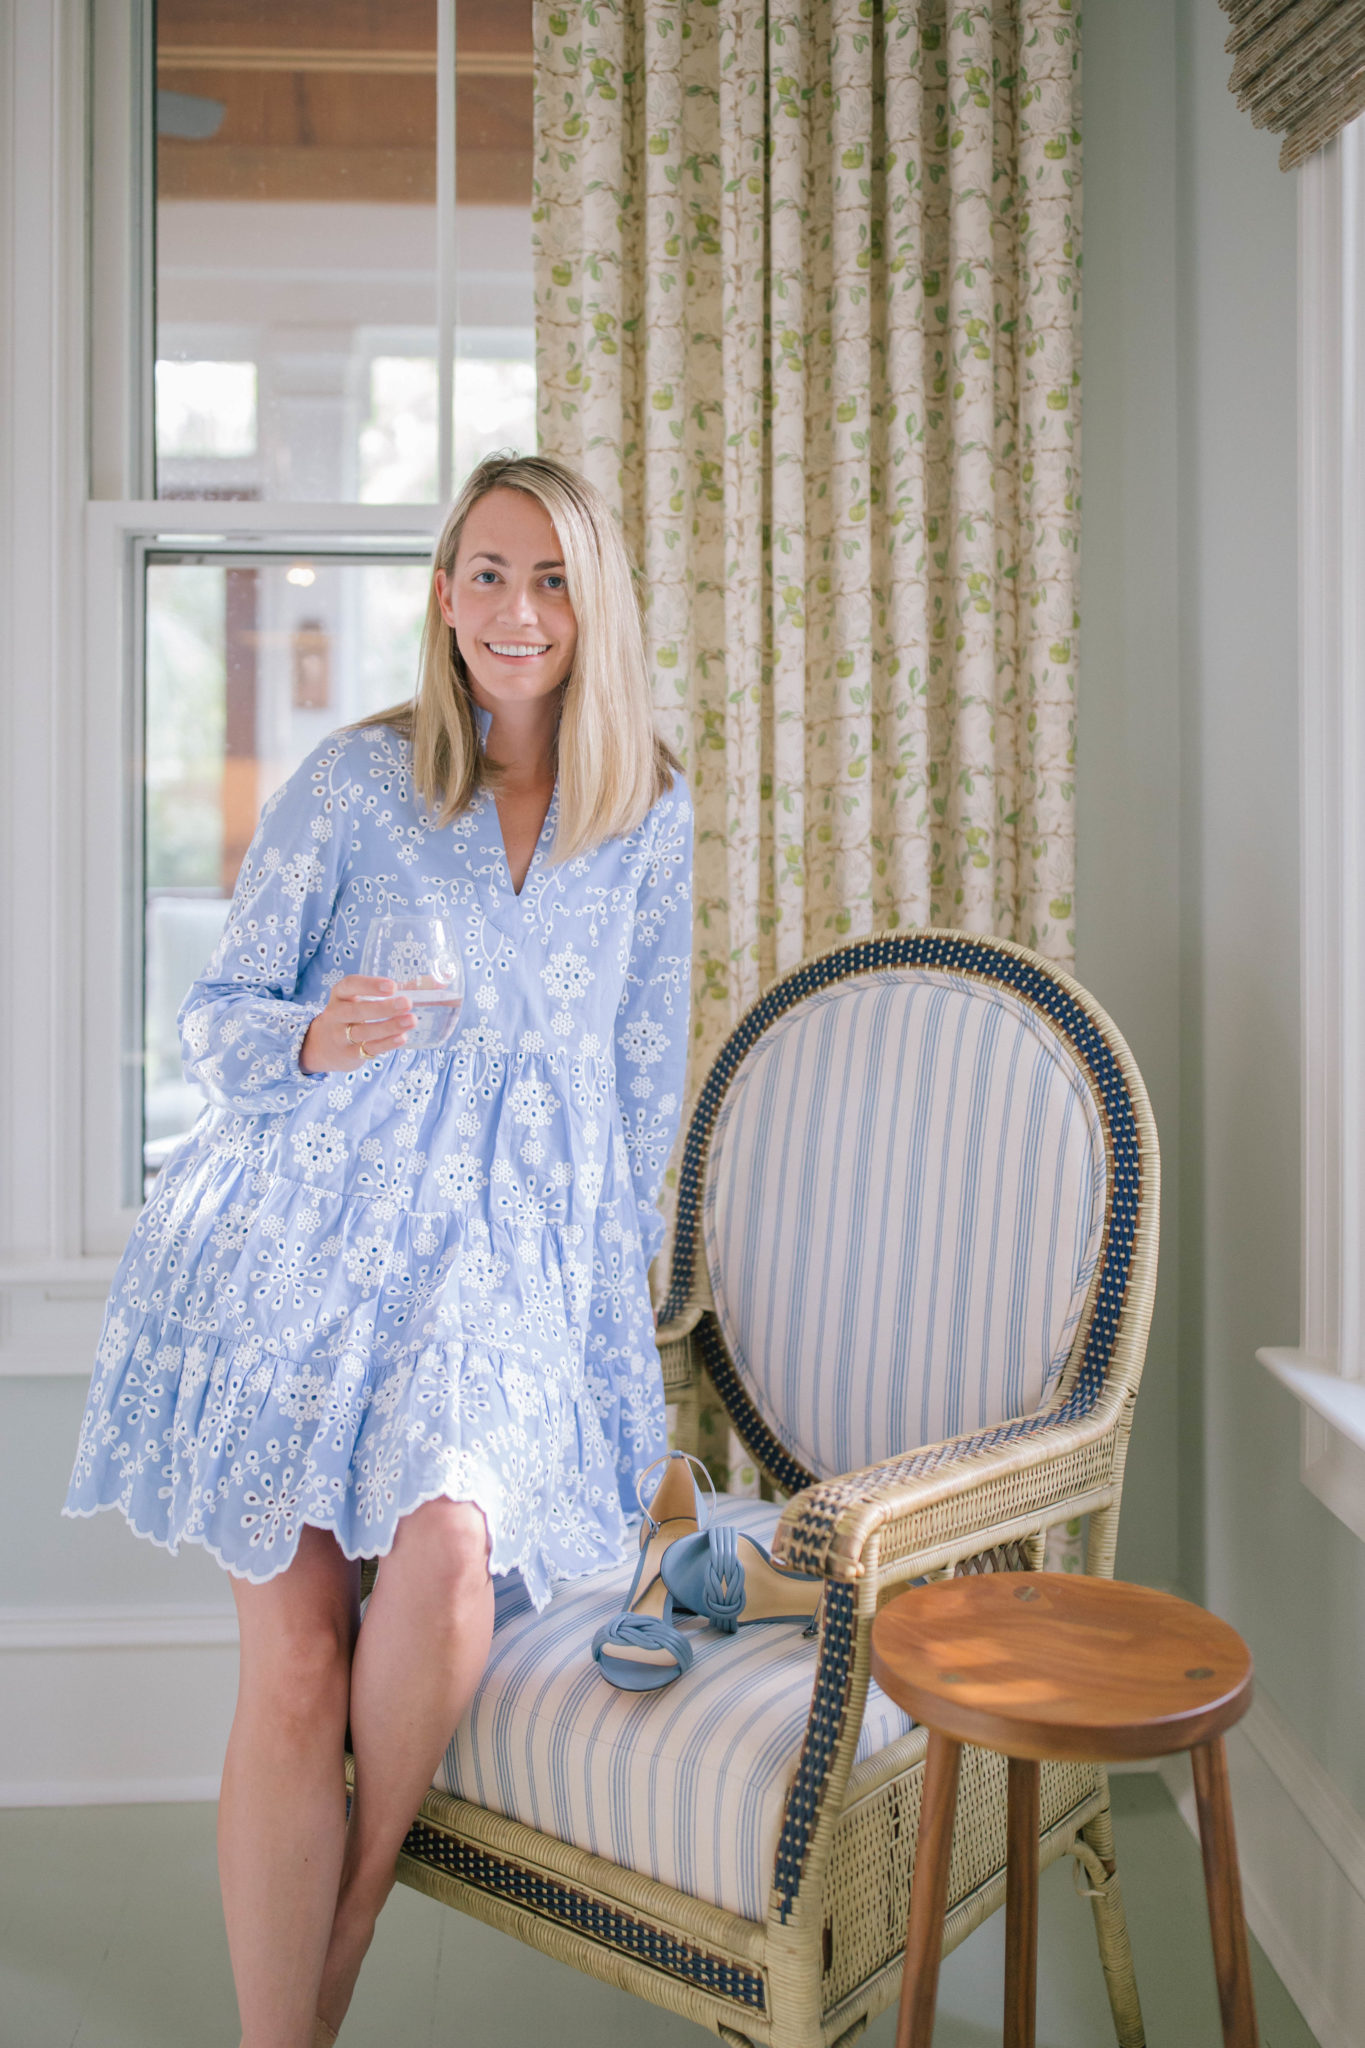 Blue and white eyelet dress for summer | Rhyme & Reason